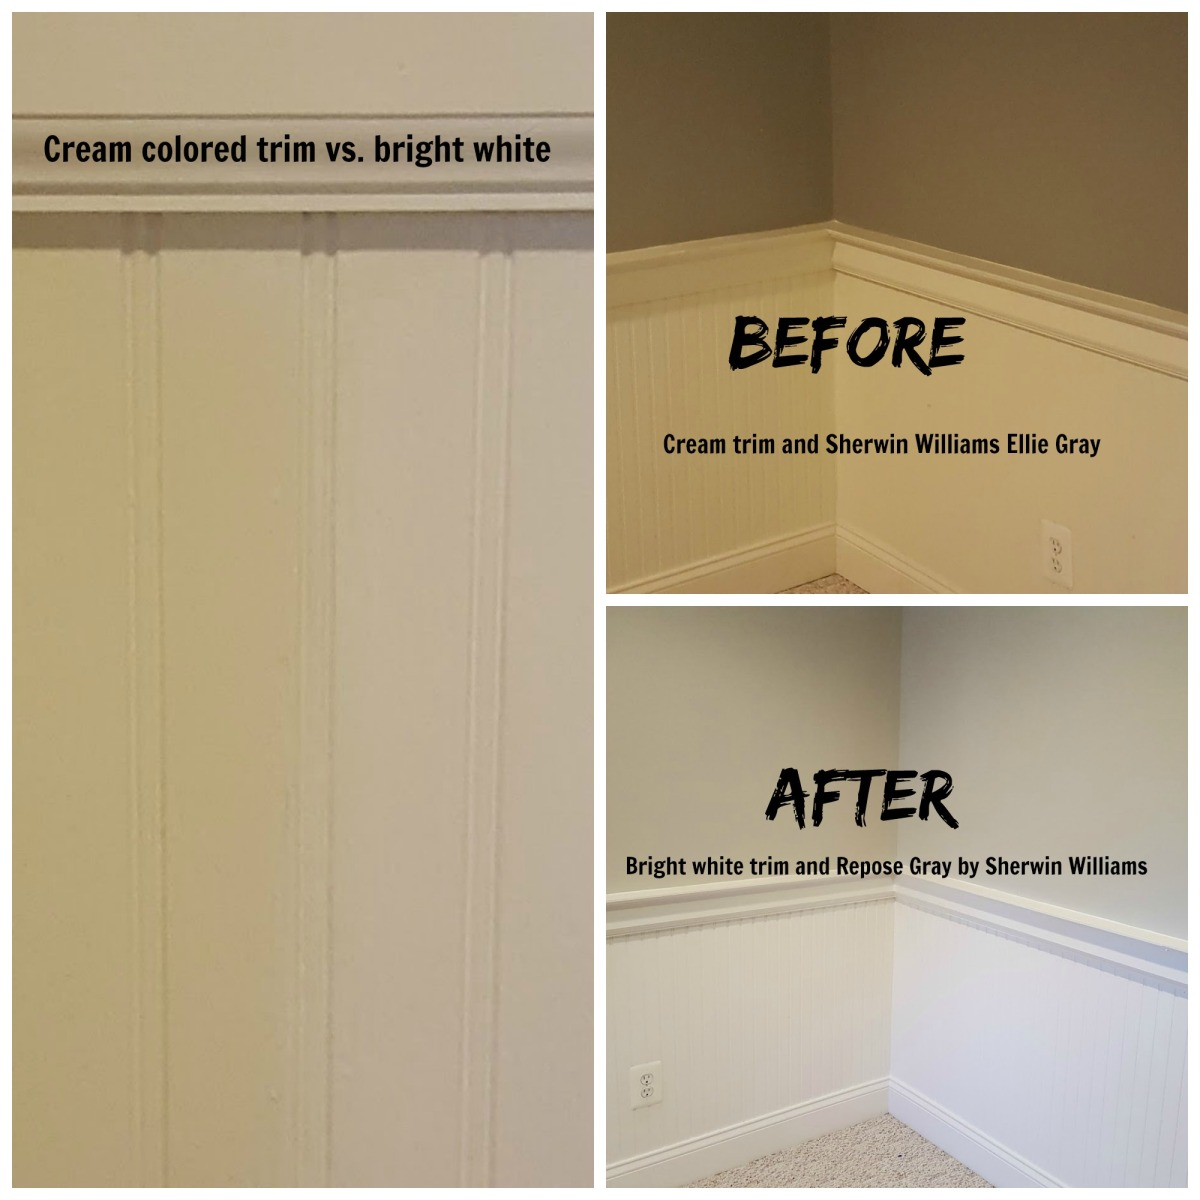 Sherwin williams ellie gray subtle changes in color